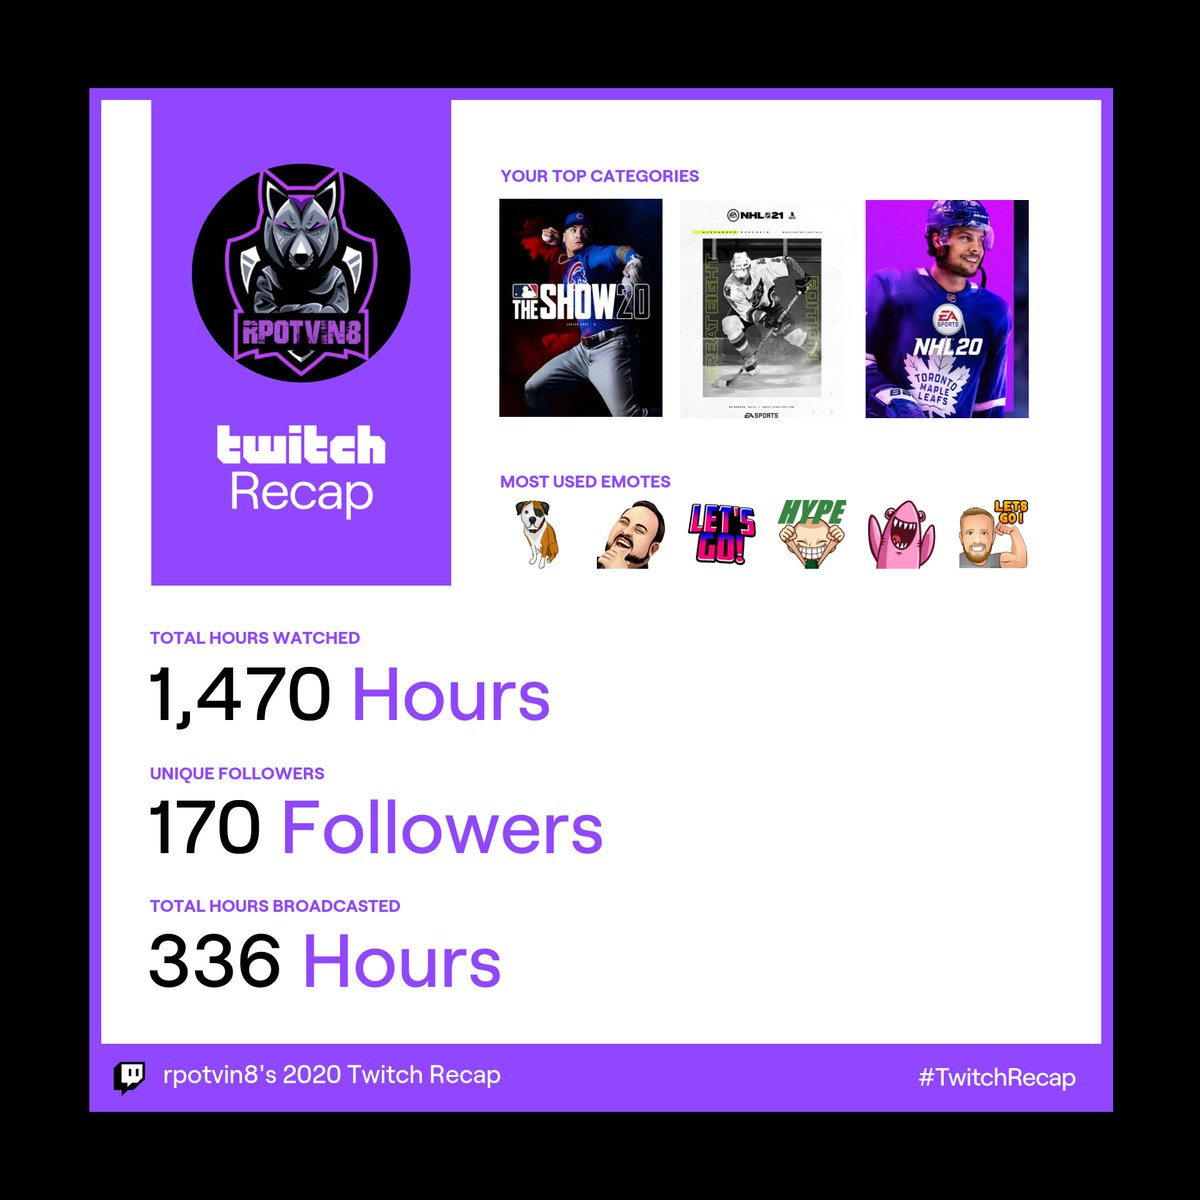 Look forward to continuing to grow in 2021 #TwitchRecap